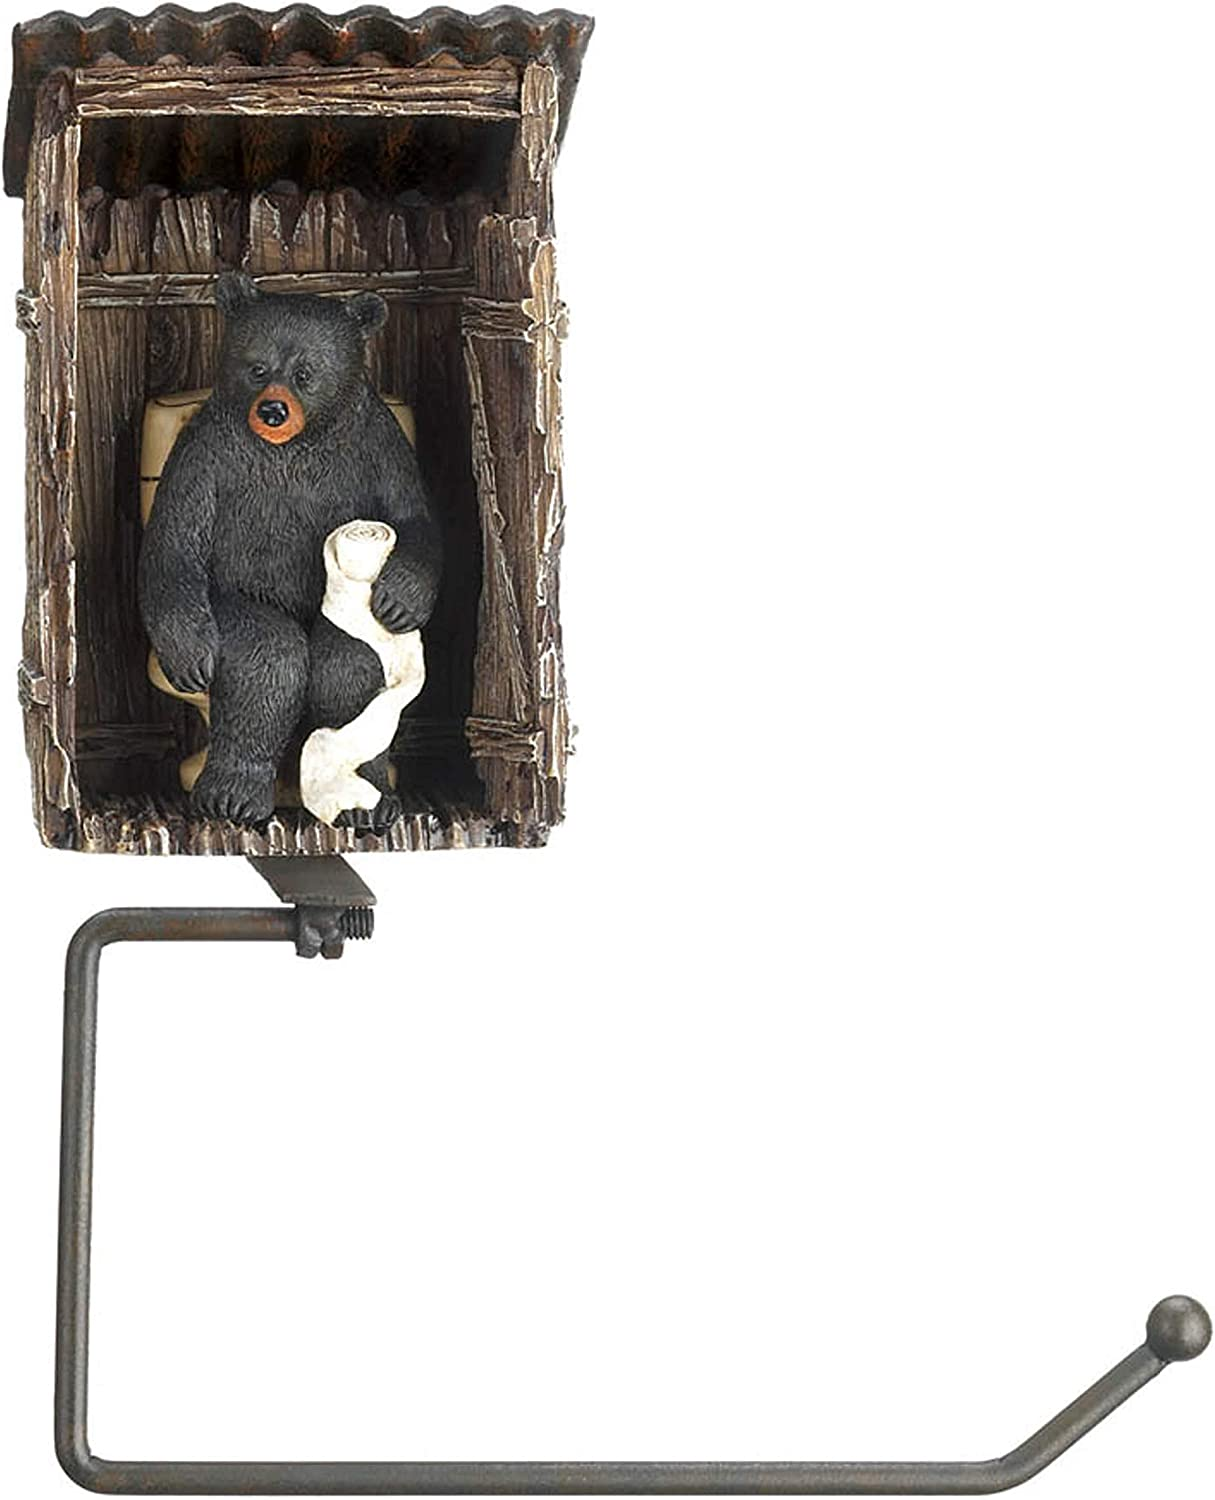 overseas Accent Plus Shipping included Bear Outhouse Paper Holder Toilet 7.32x3.75x9.5